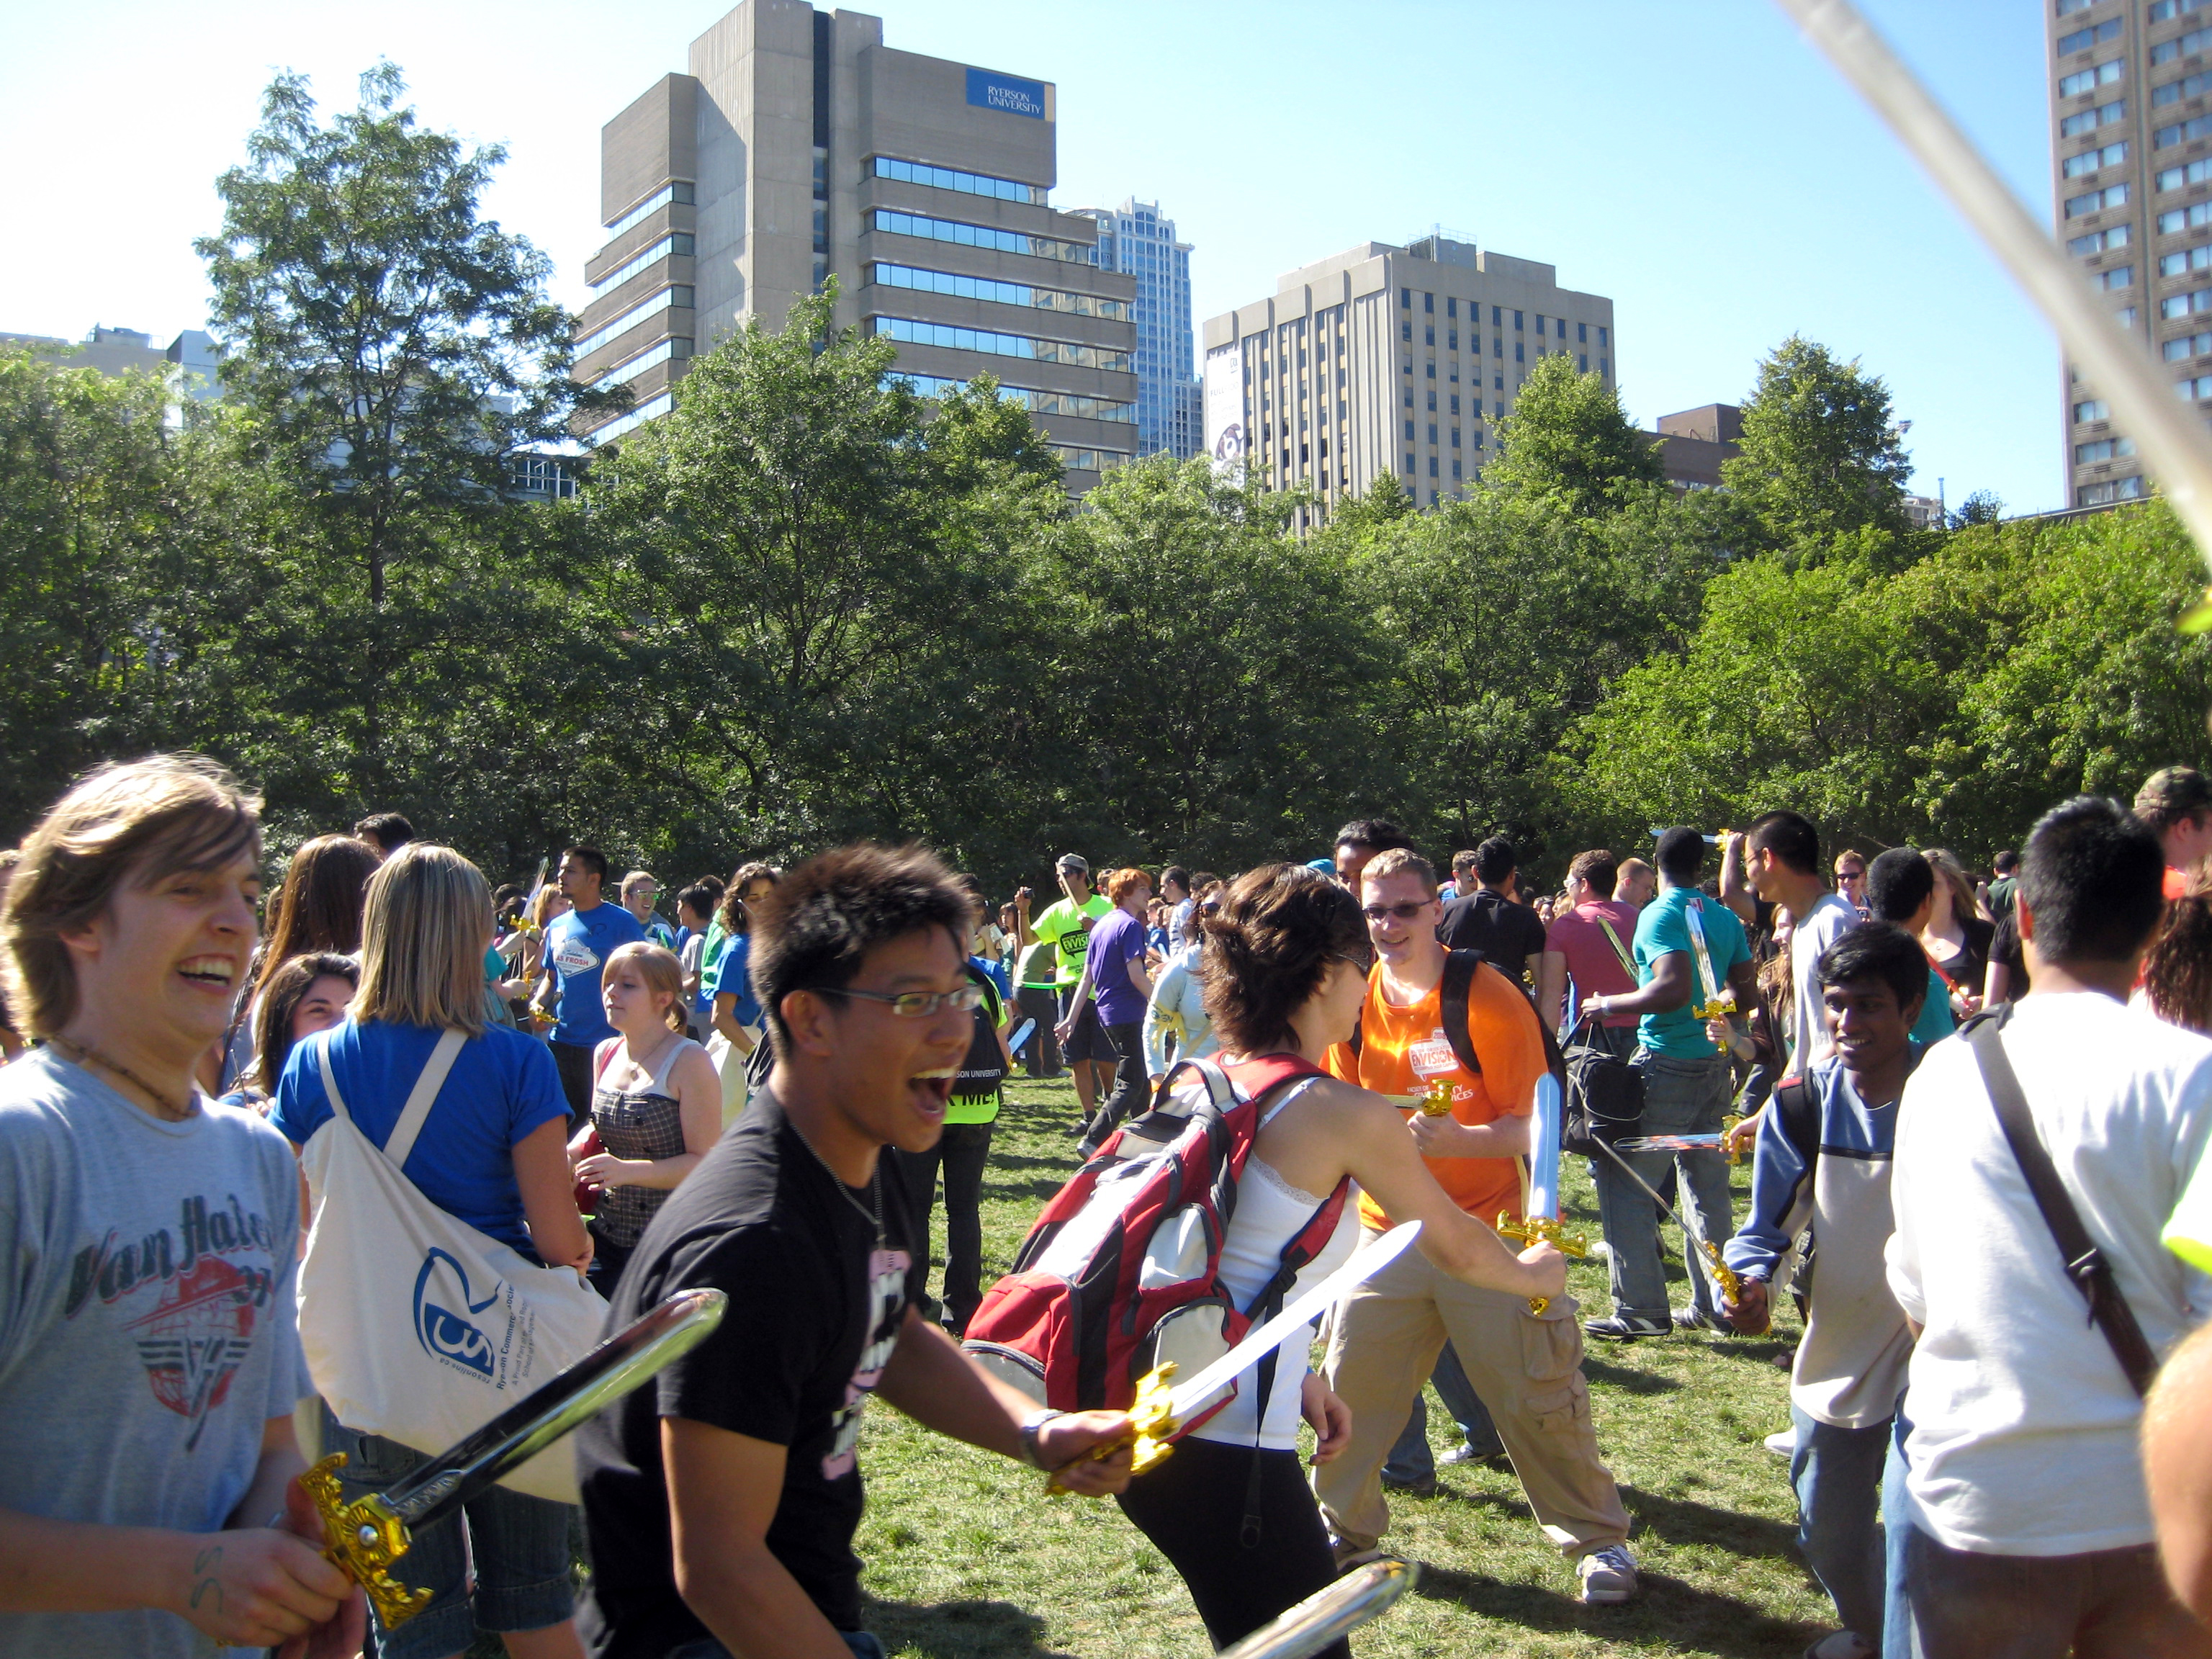 An attempt to break the record for the world's largest sword fight happened during Frosh Week at Ryerson University in Toronto on Aug. 26, 2008. (Steve Silva)